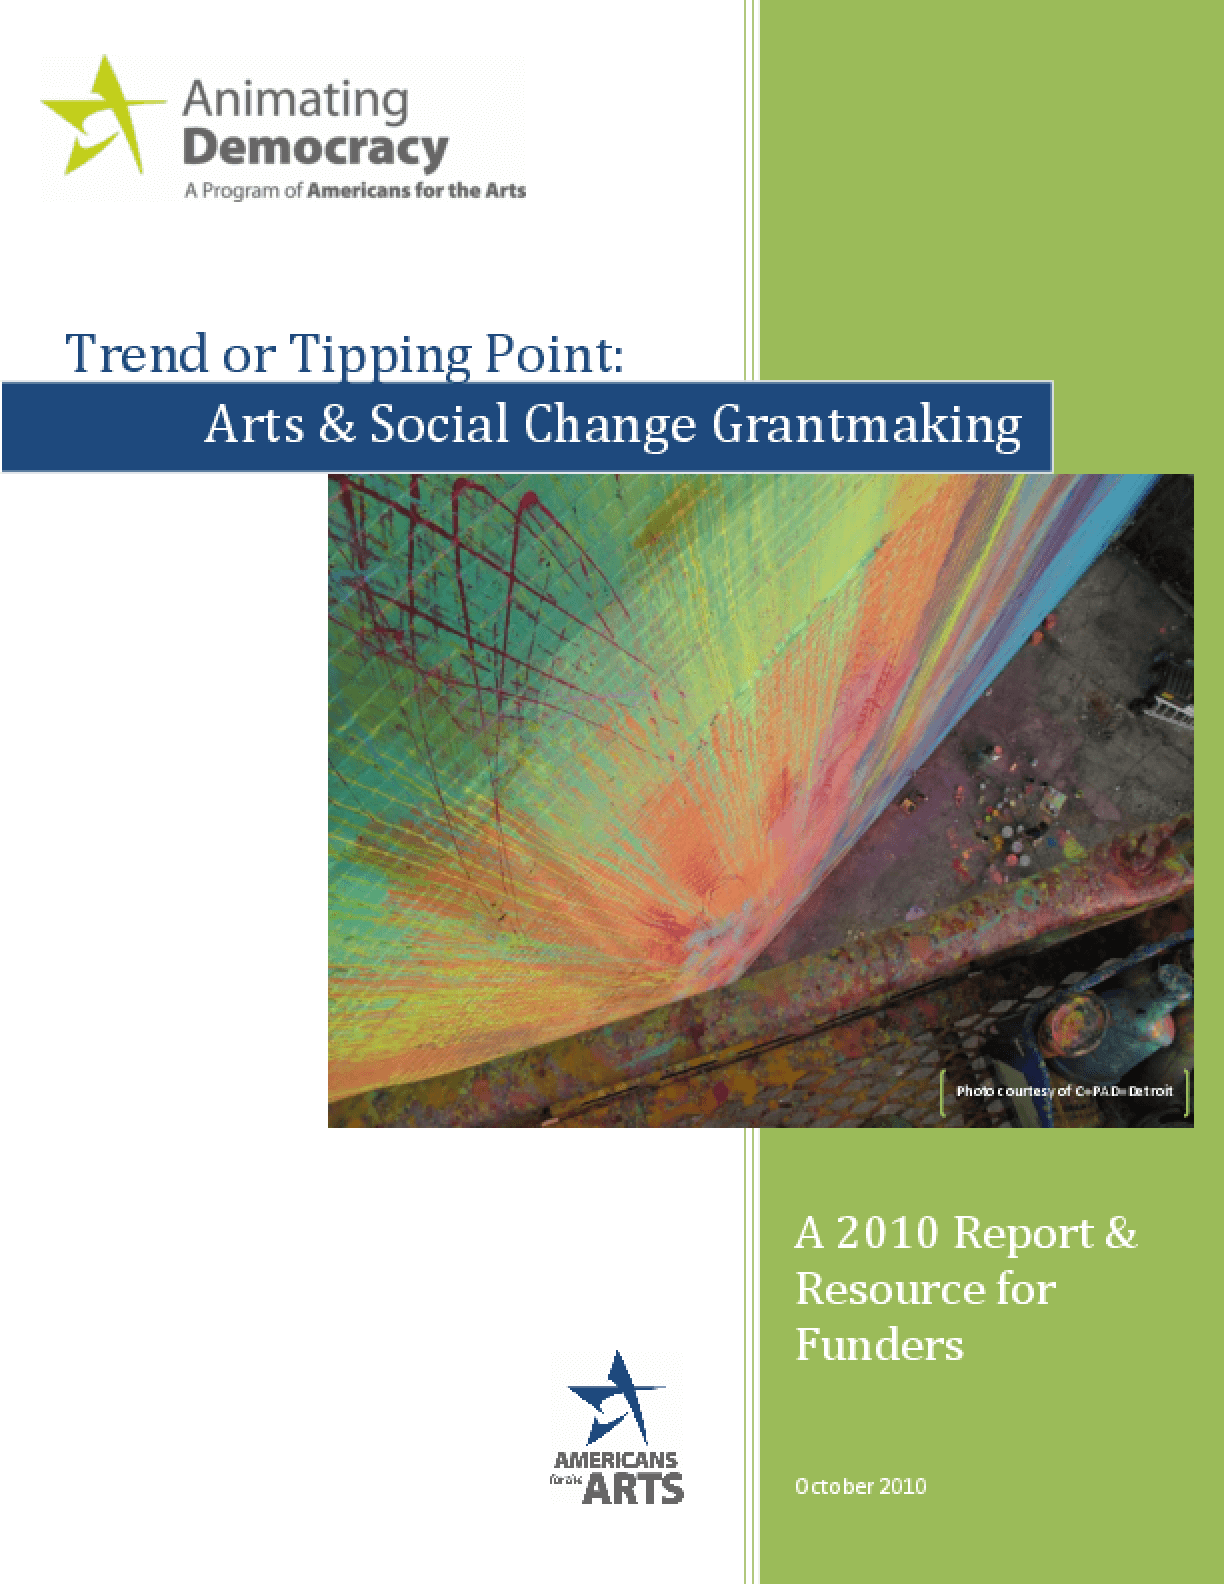 Trend or Tipping Point: Arts & Social Change Grantmaking: A 2010 Report & Resource for Funders